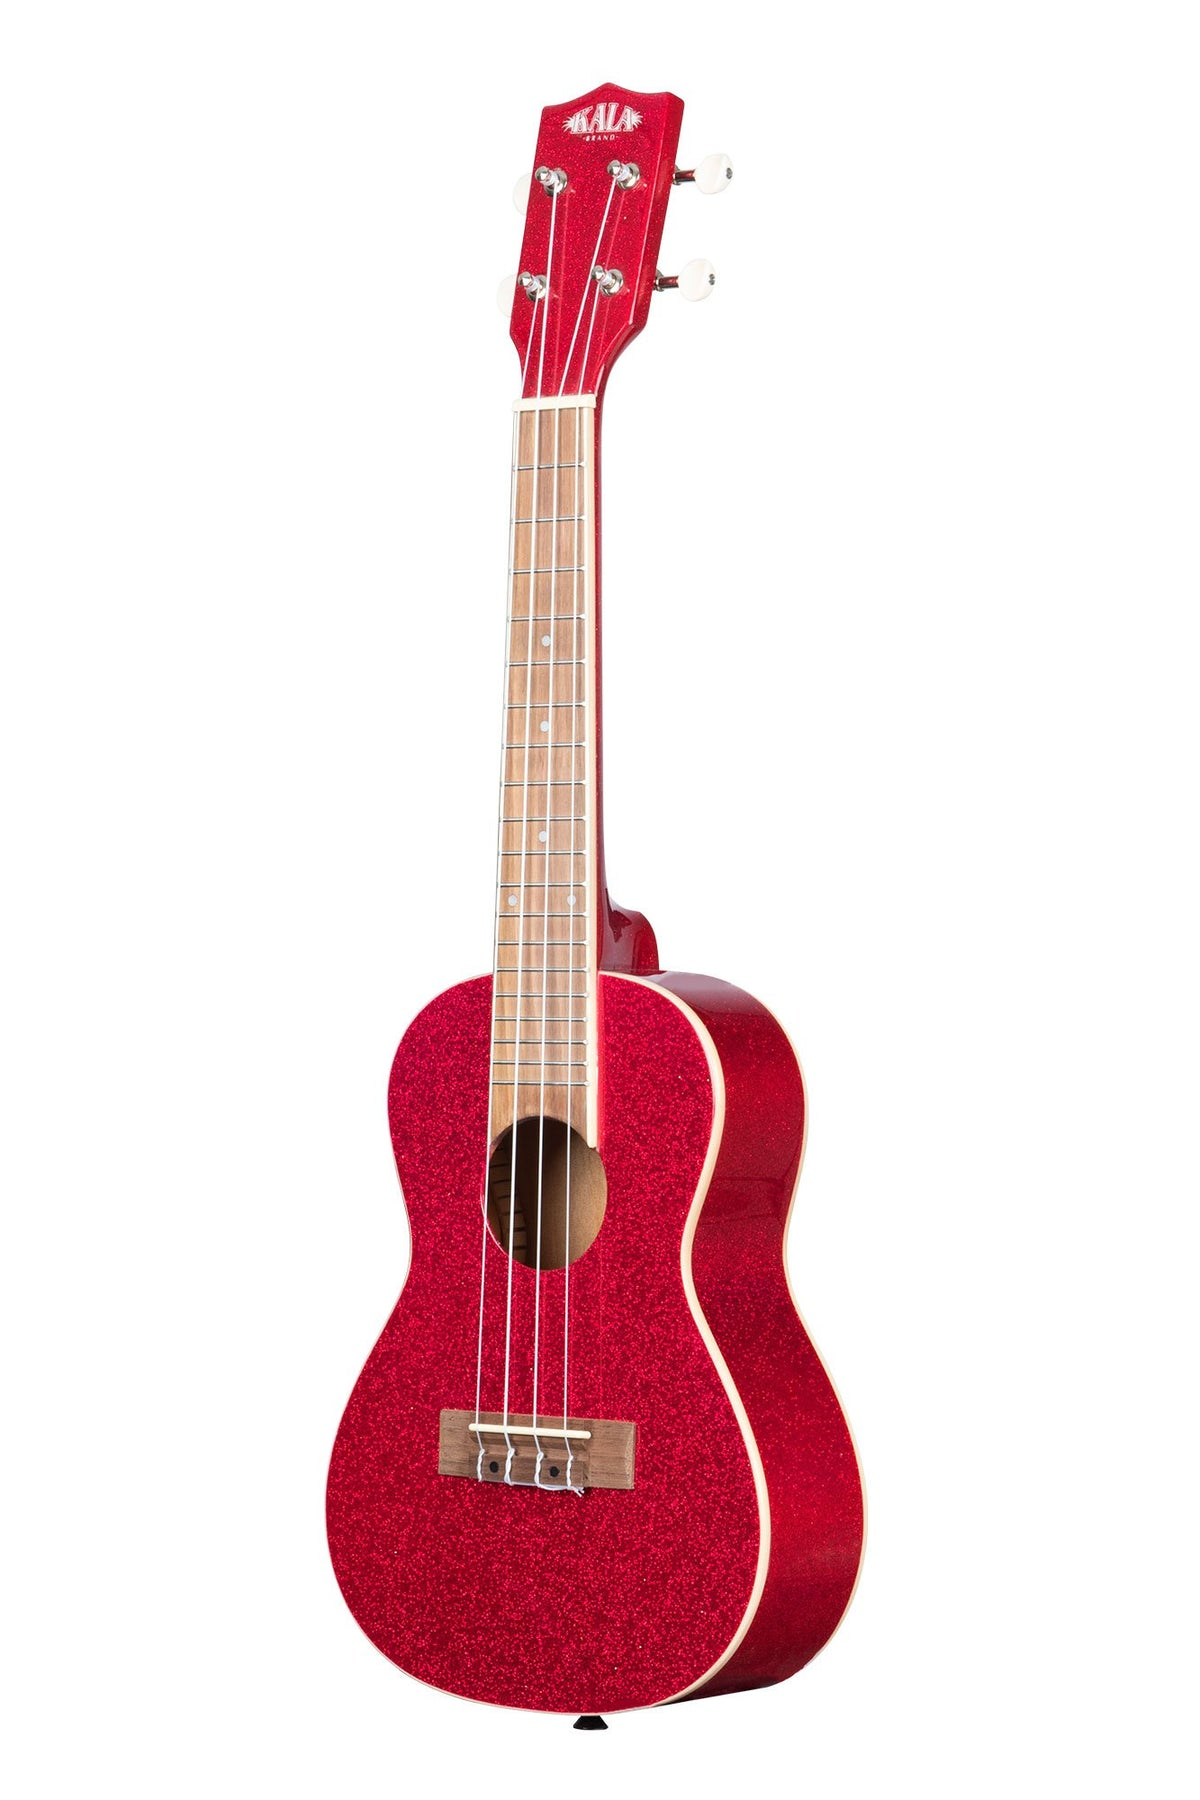 KA-SPRK-RED Kala Sparkle Series RITZY RED CONCERT UKULELE